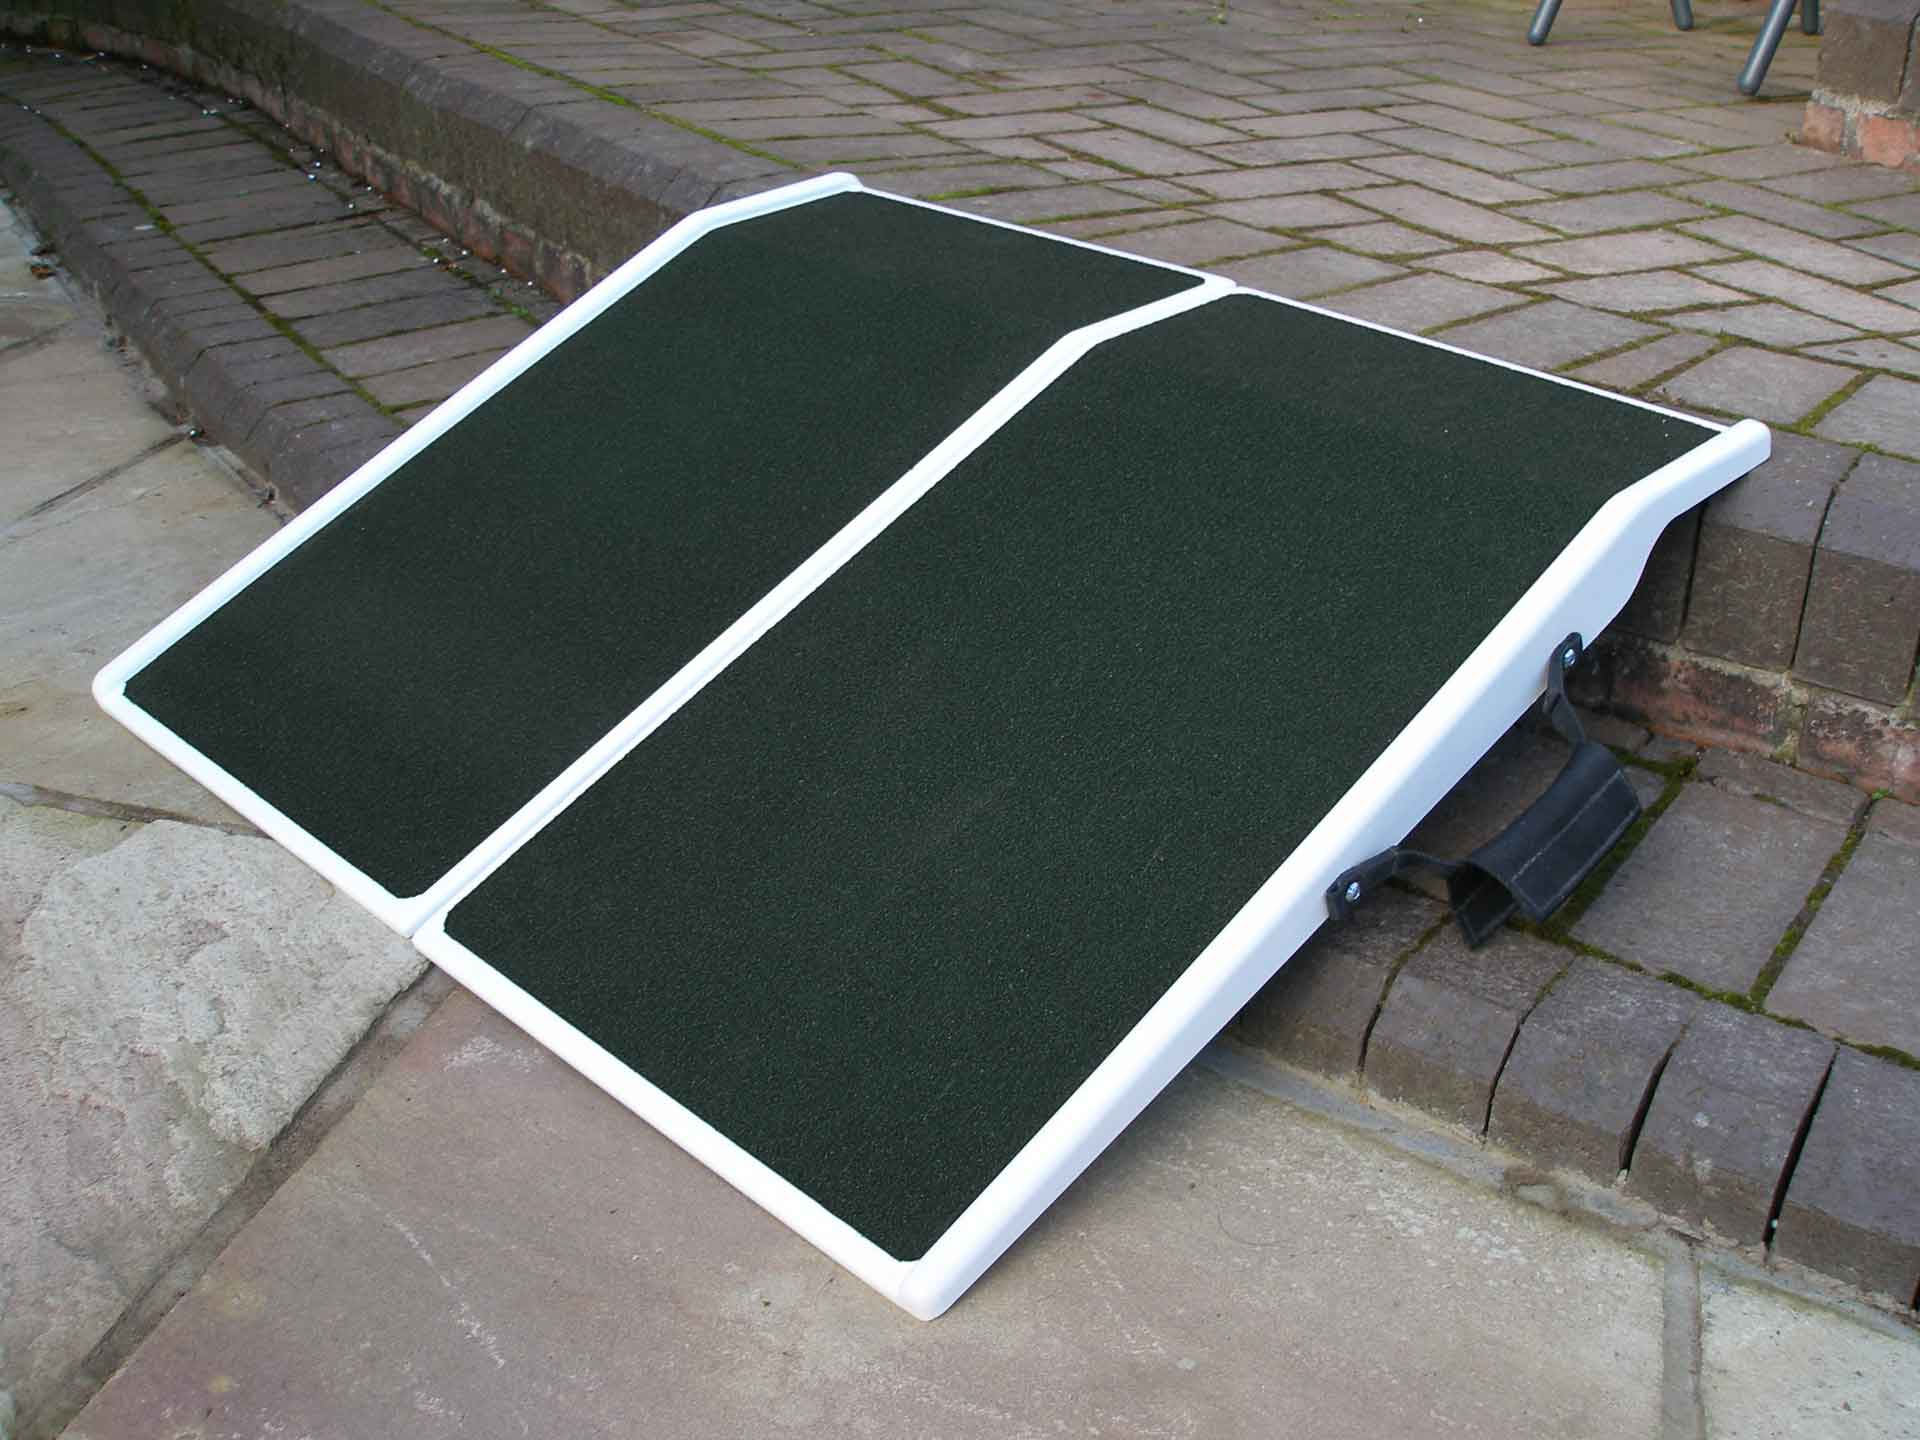 Travel ramp renatl for disabled and handicapped wheelchairs or scooters everywhere in France